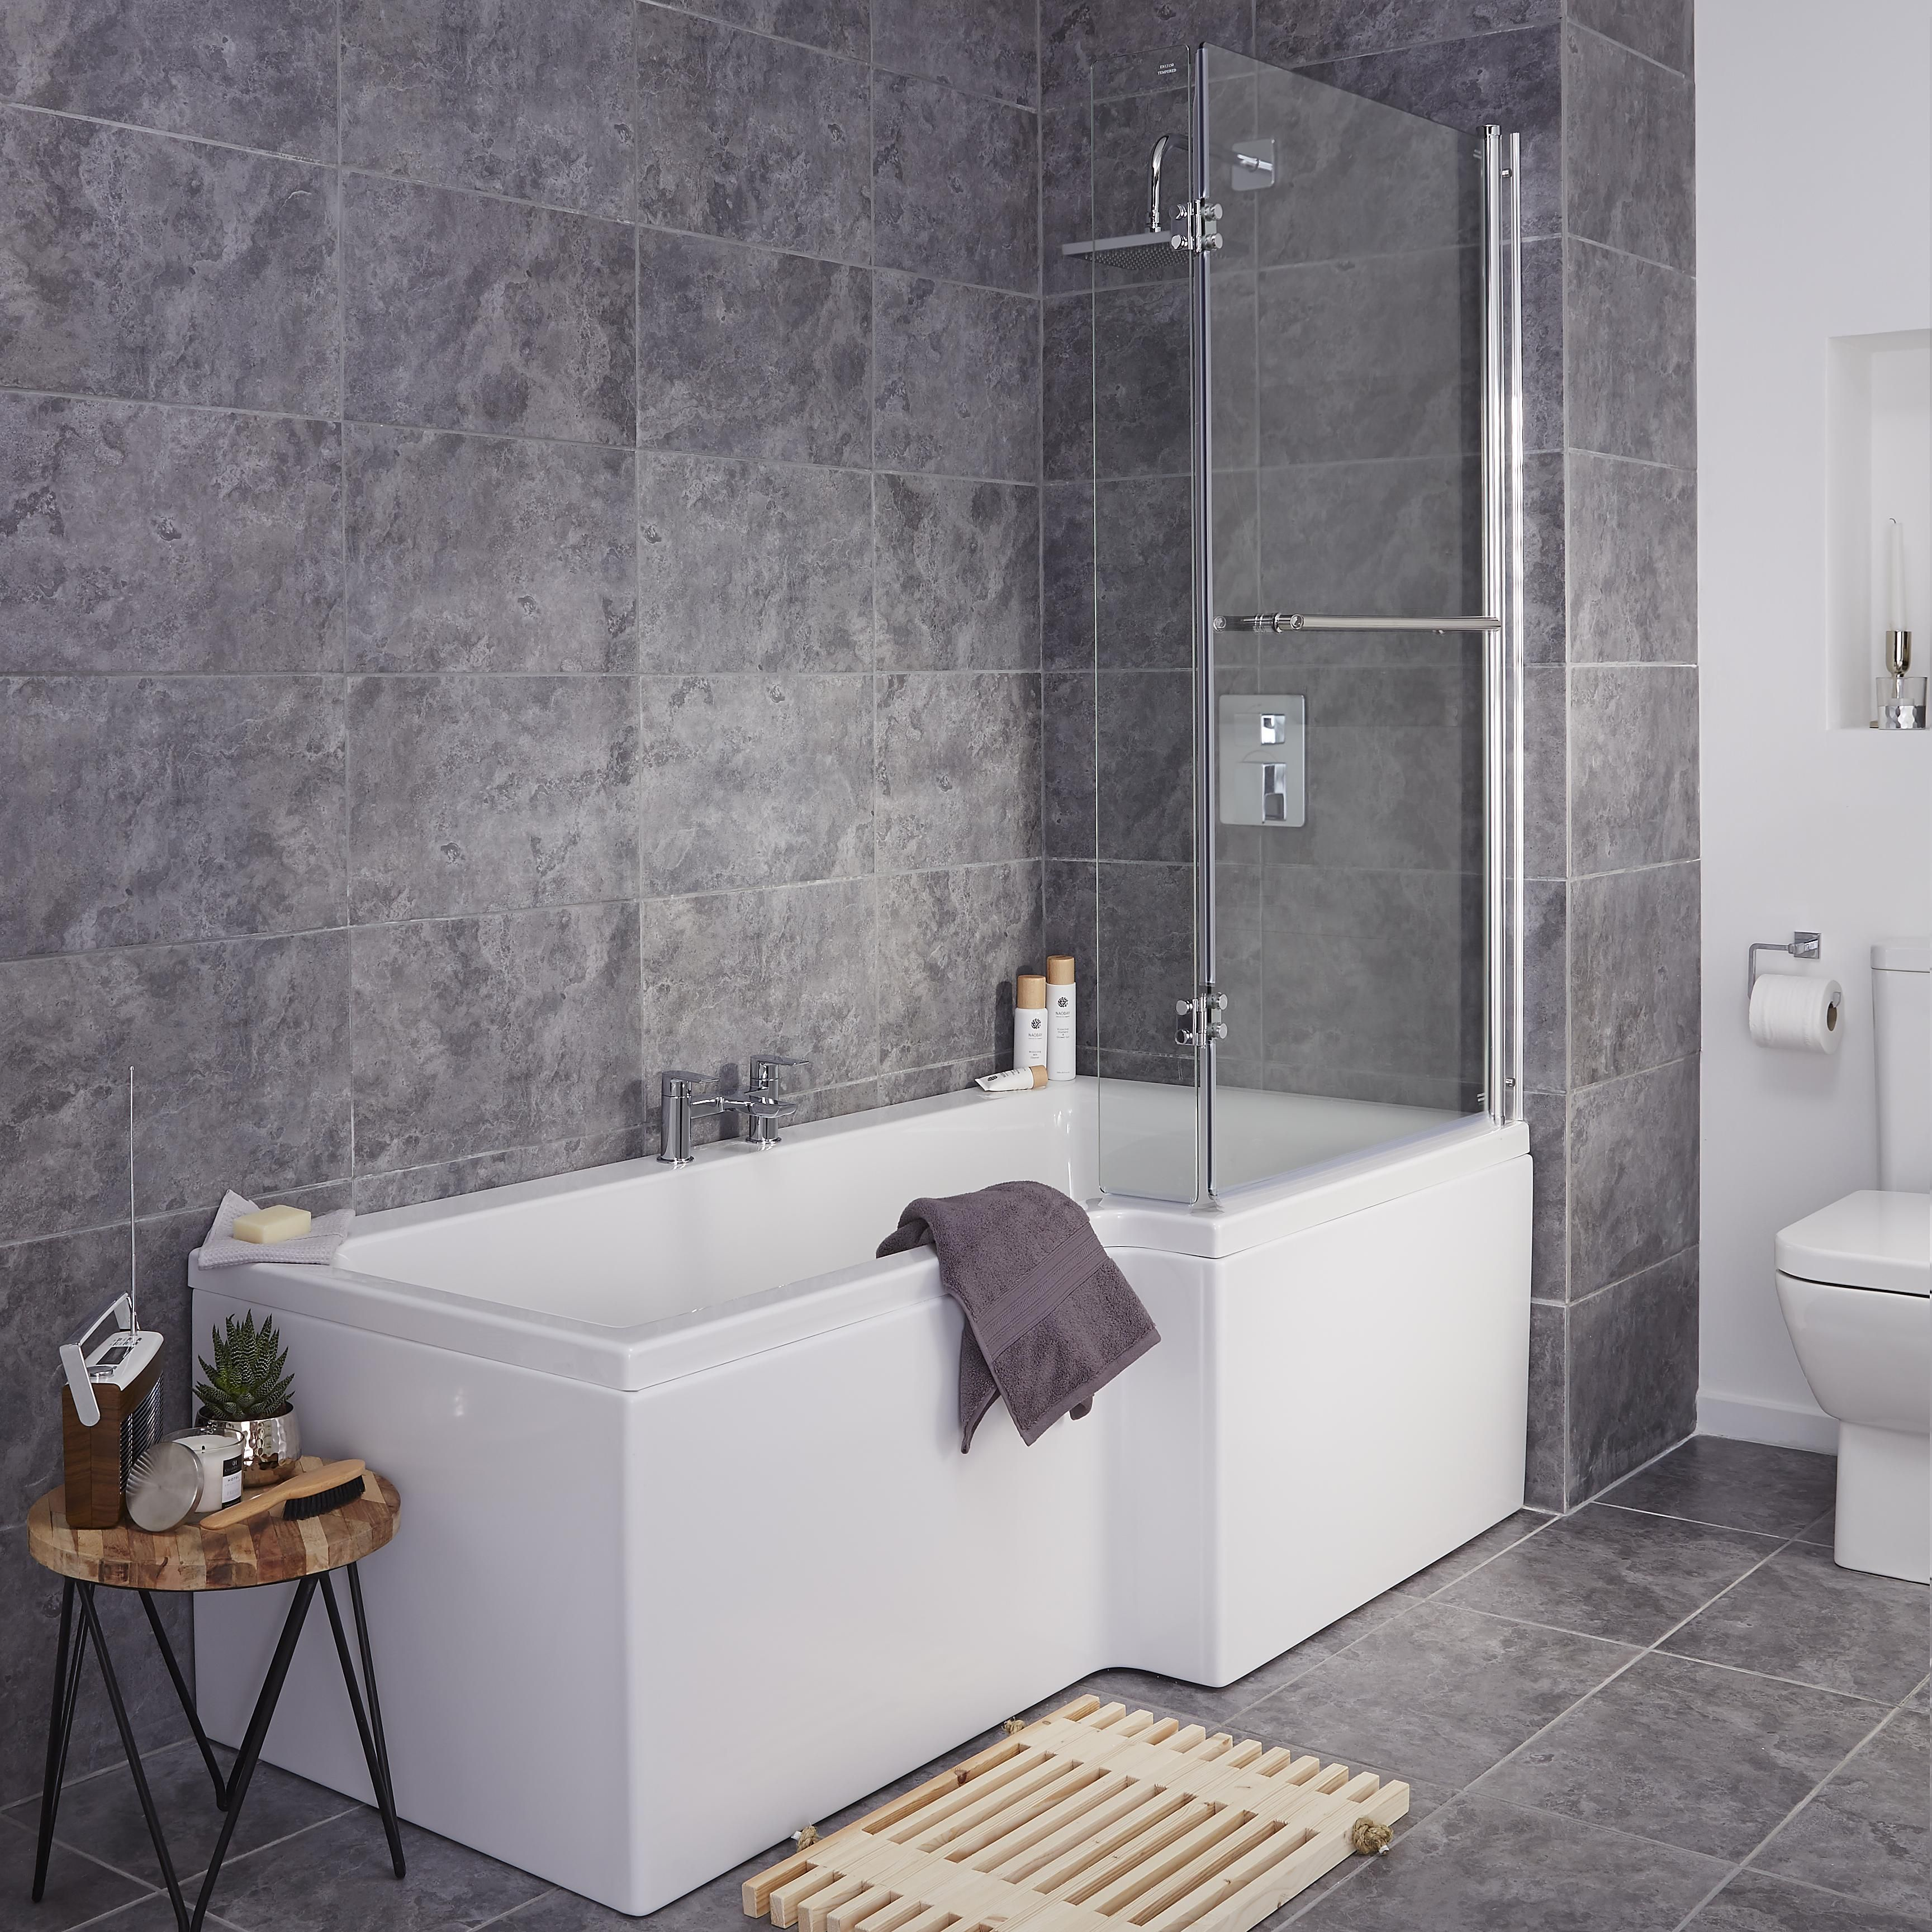 Make Sure That Your Bathroom Is Set Up With Lots Of Lovely Things, Candles,